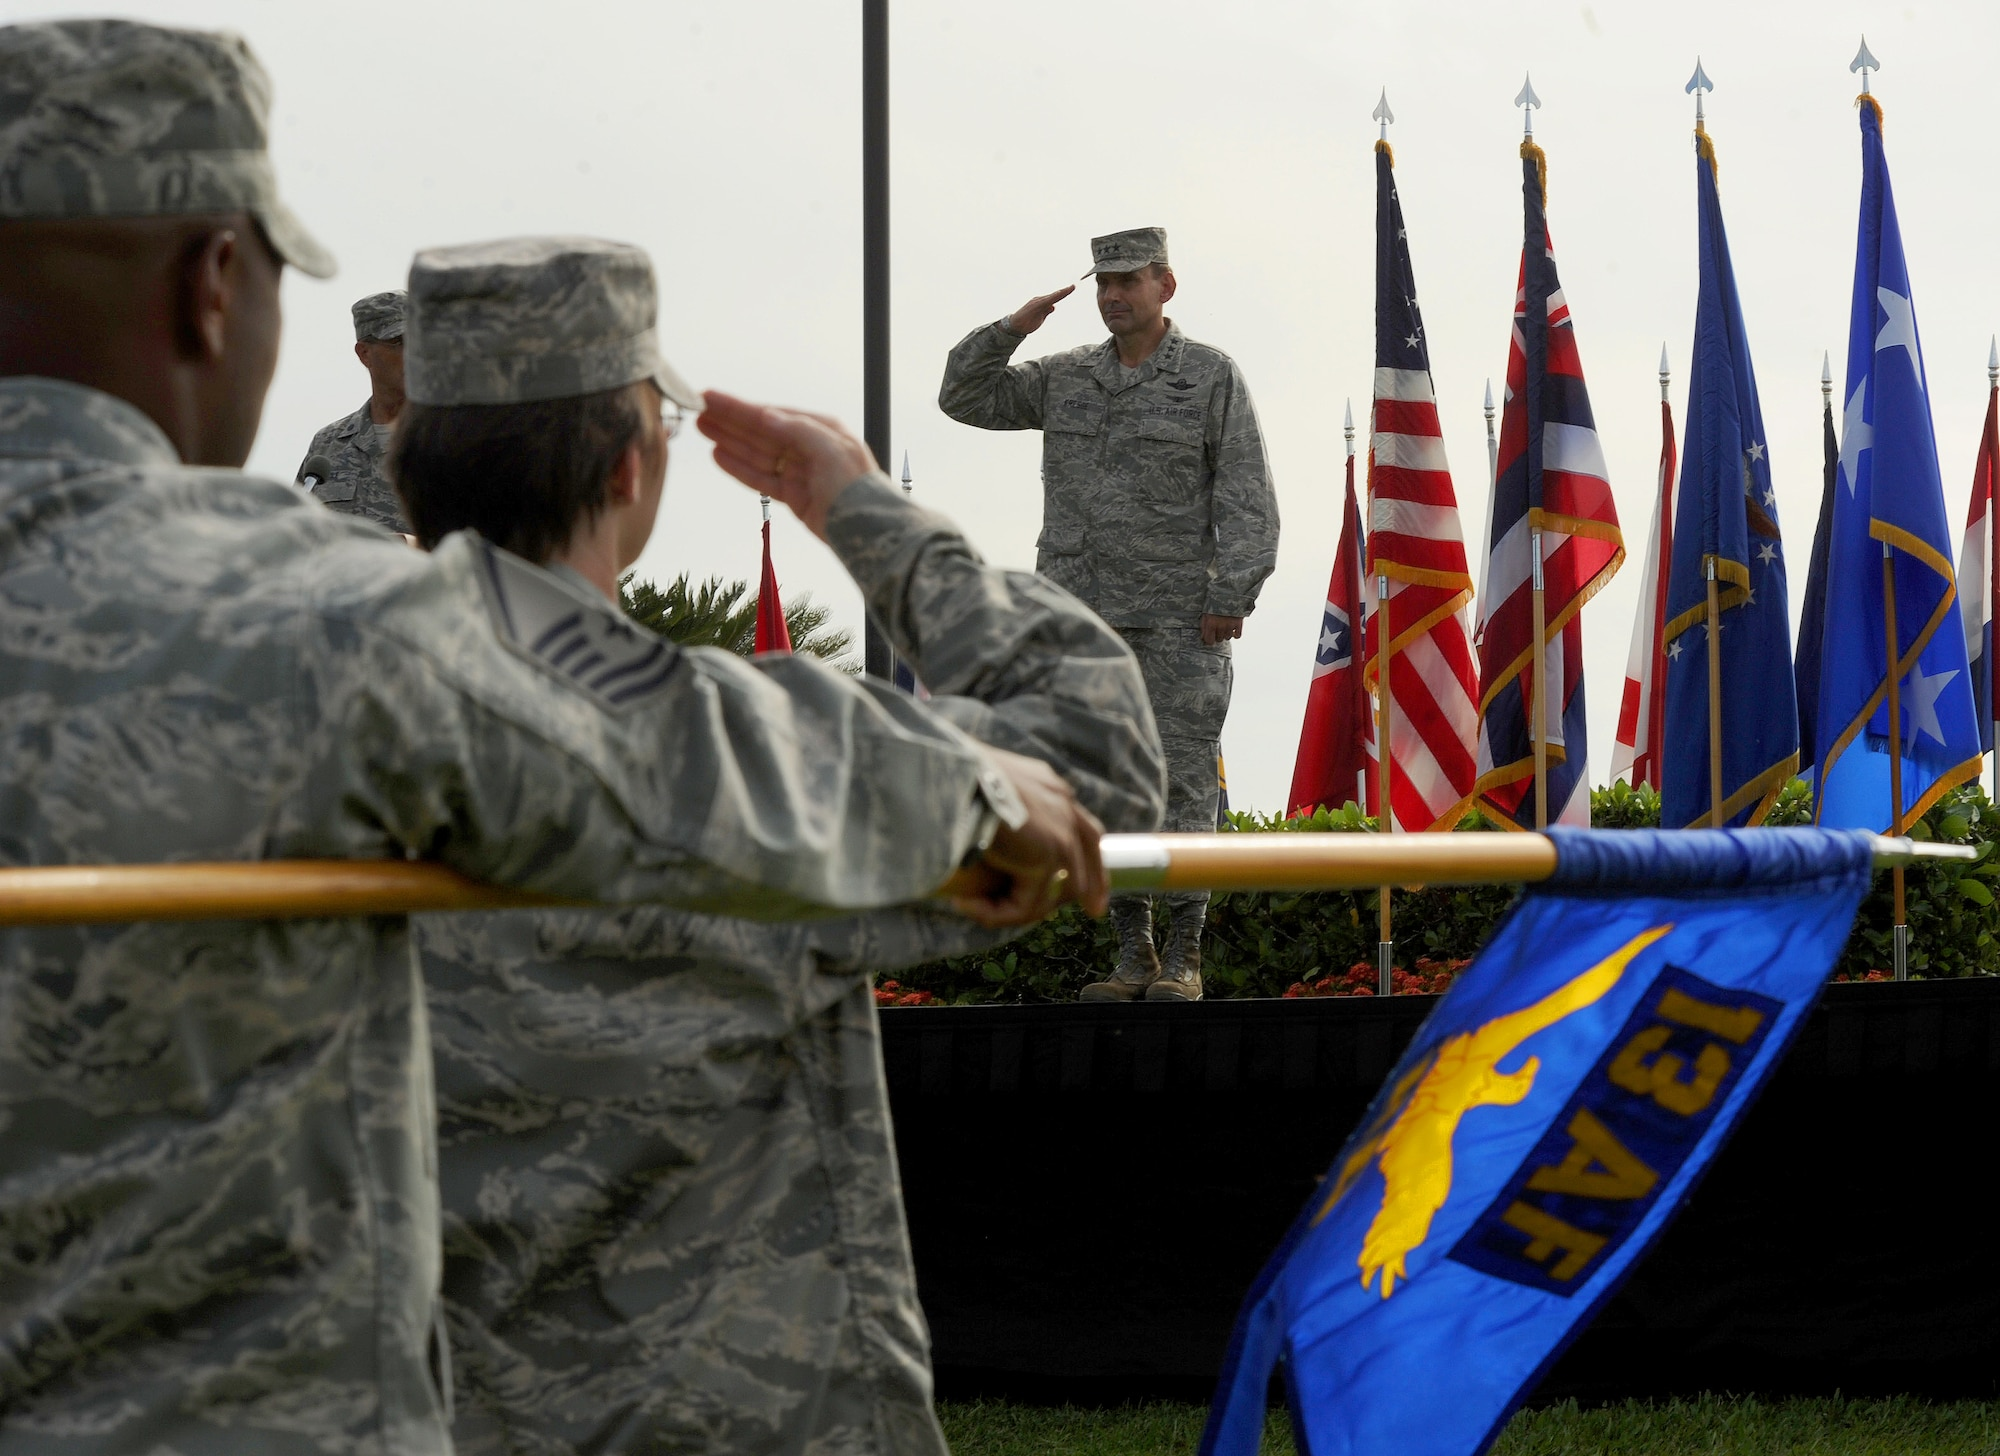 Lt. Gen. Stanley T. Kresge, renders his final salute as the commander of 13th Air Force during the 13th Air Force inactivation ceremony Sept. 28, 2012, at Joint Base Pearl Harbor-Hickam, Hawaii. Kresge has been selected to serve as the vice commander of Pacific Air Forces, JBPH-Hickam. The 13th Air Force inactivated after seventy years of continuous service in the Pacific region. (U.S. Air Force photo/Tech. Sgt. Matthew McGovern)